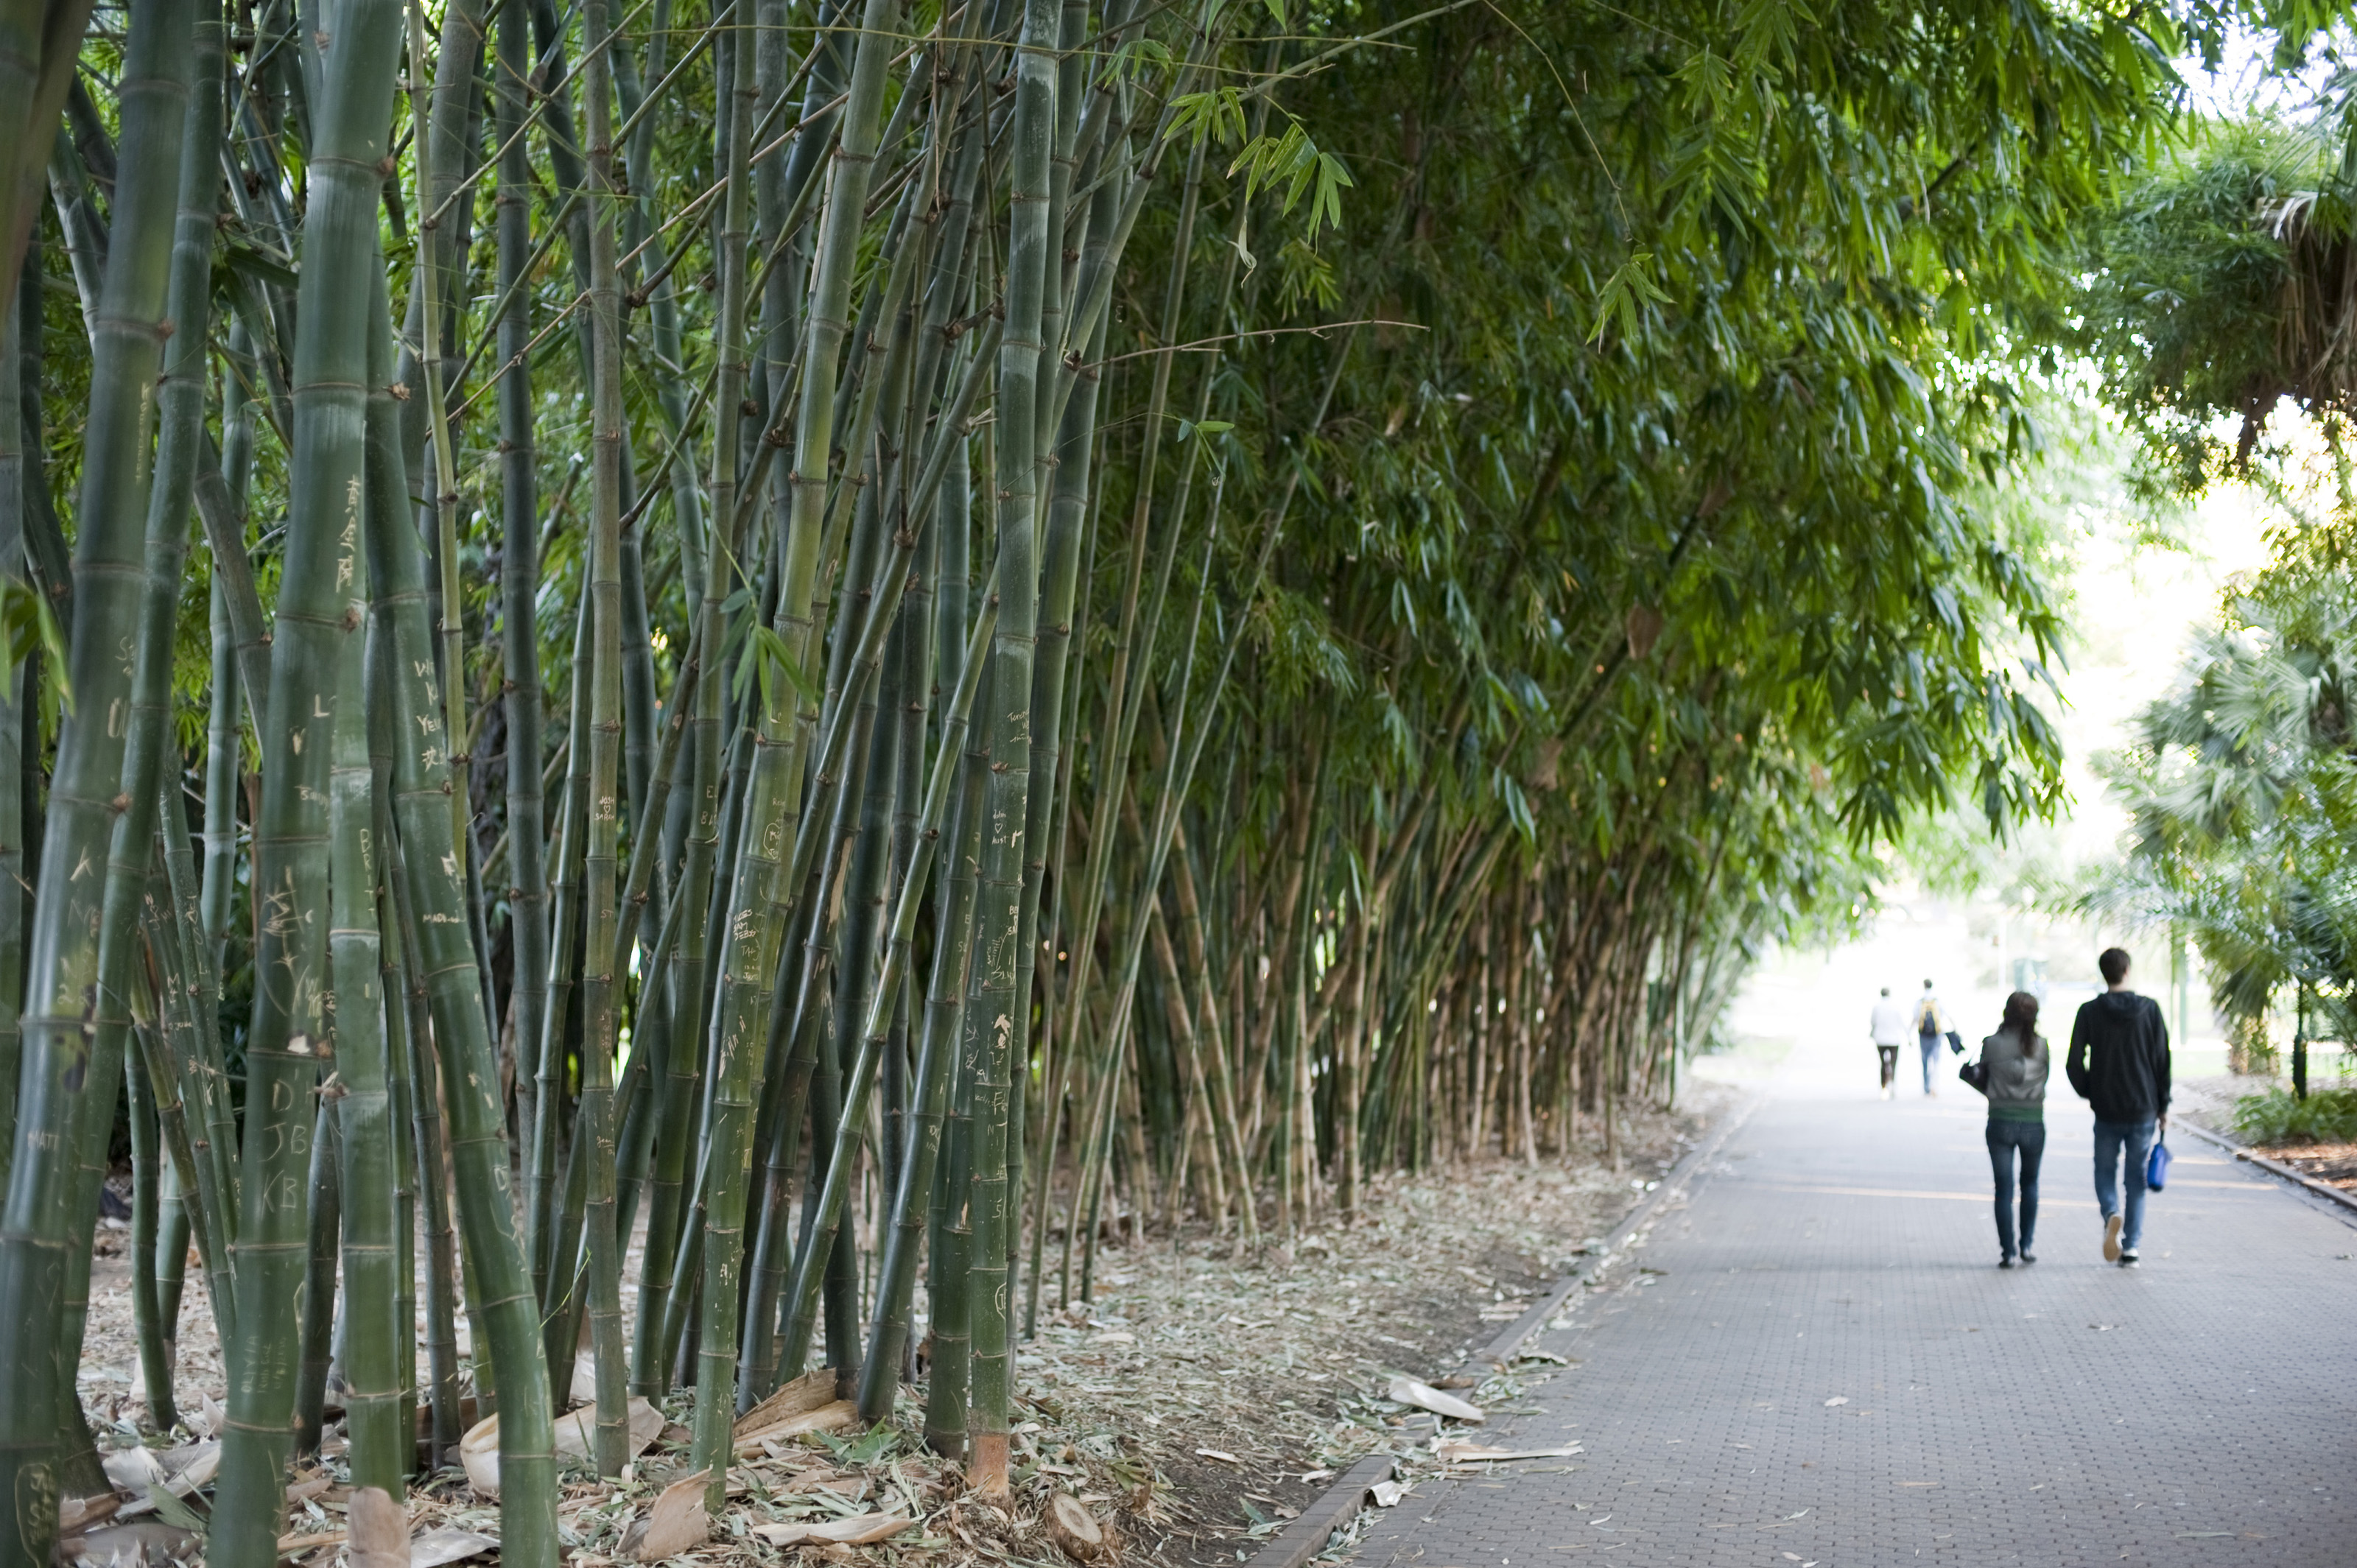 walkway through bamboo plantation 4259 stockarch free stock photos. Black Bedroom Furniture Sets. Home Design Ideas